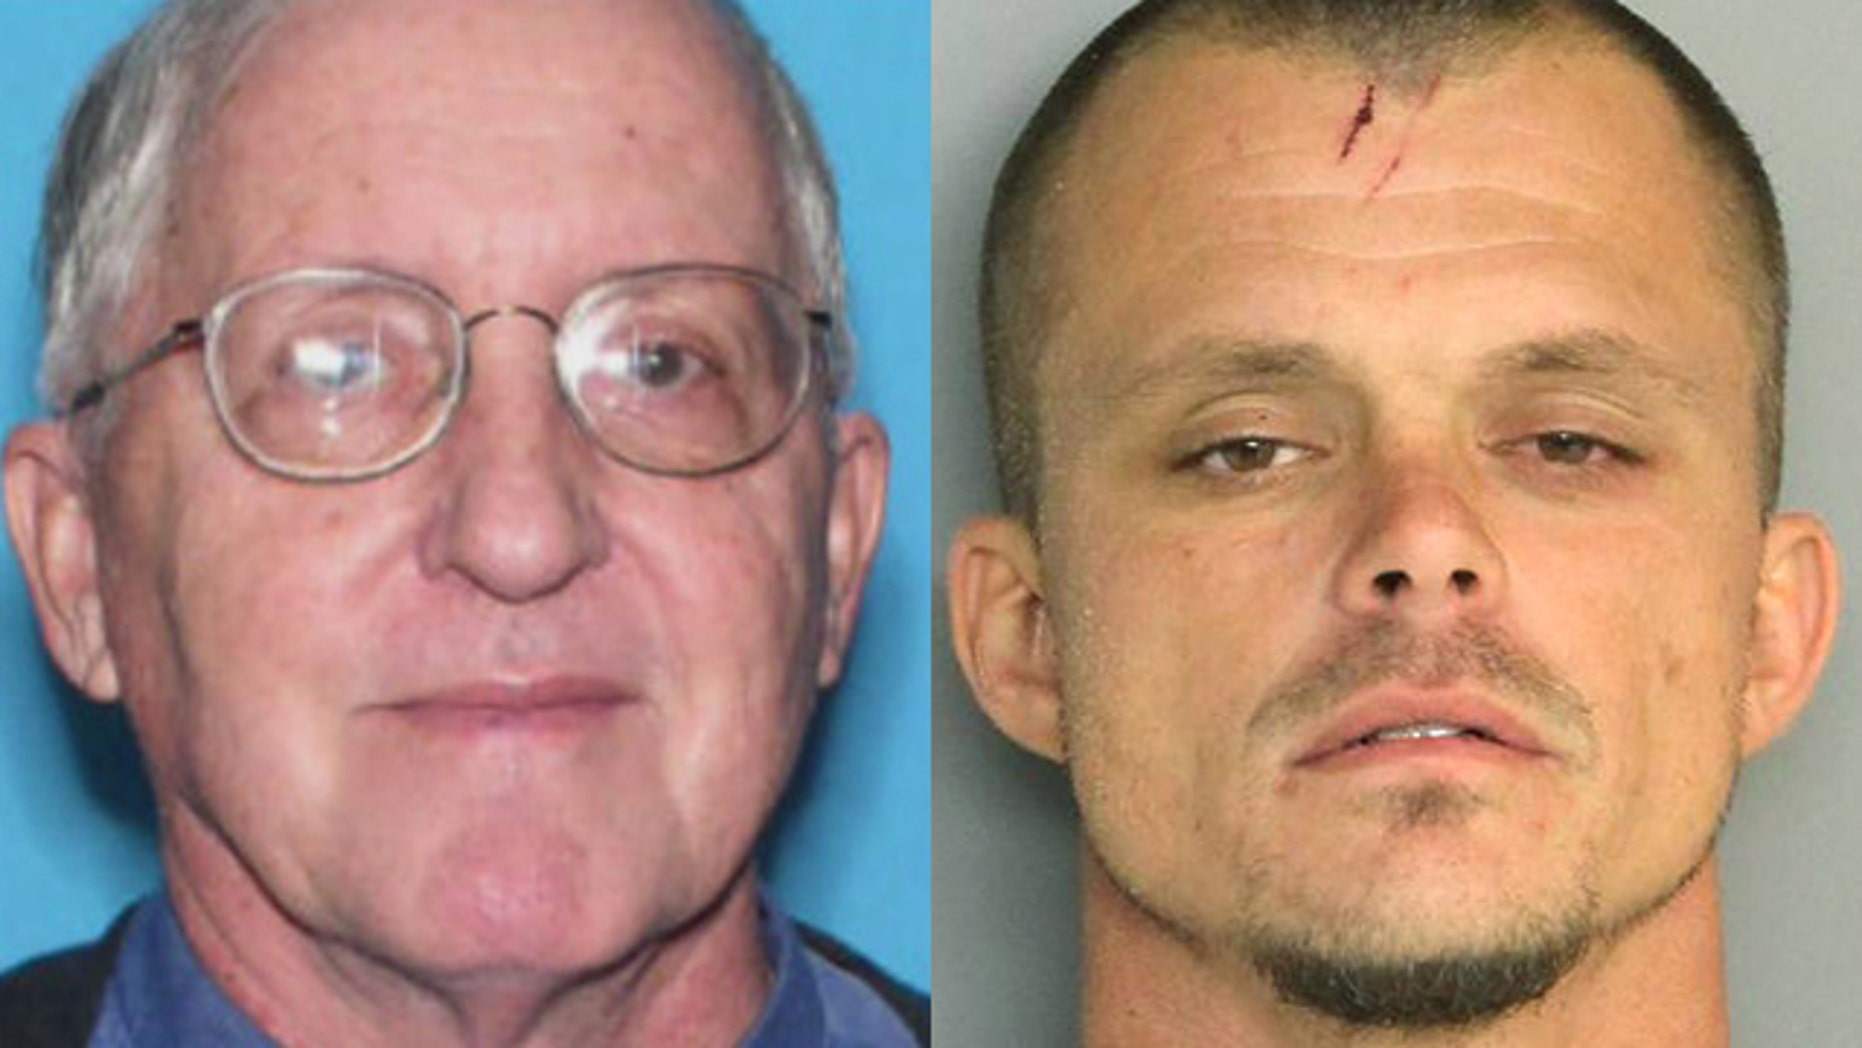 The undated photo at left shows the Rev. Rene Robert. The April 14, 2016 photo at right shows Steven James Murray of Jacksonville, Fla.